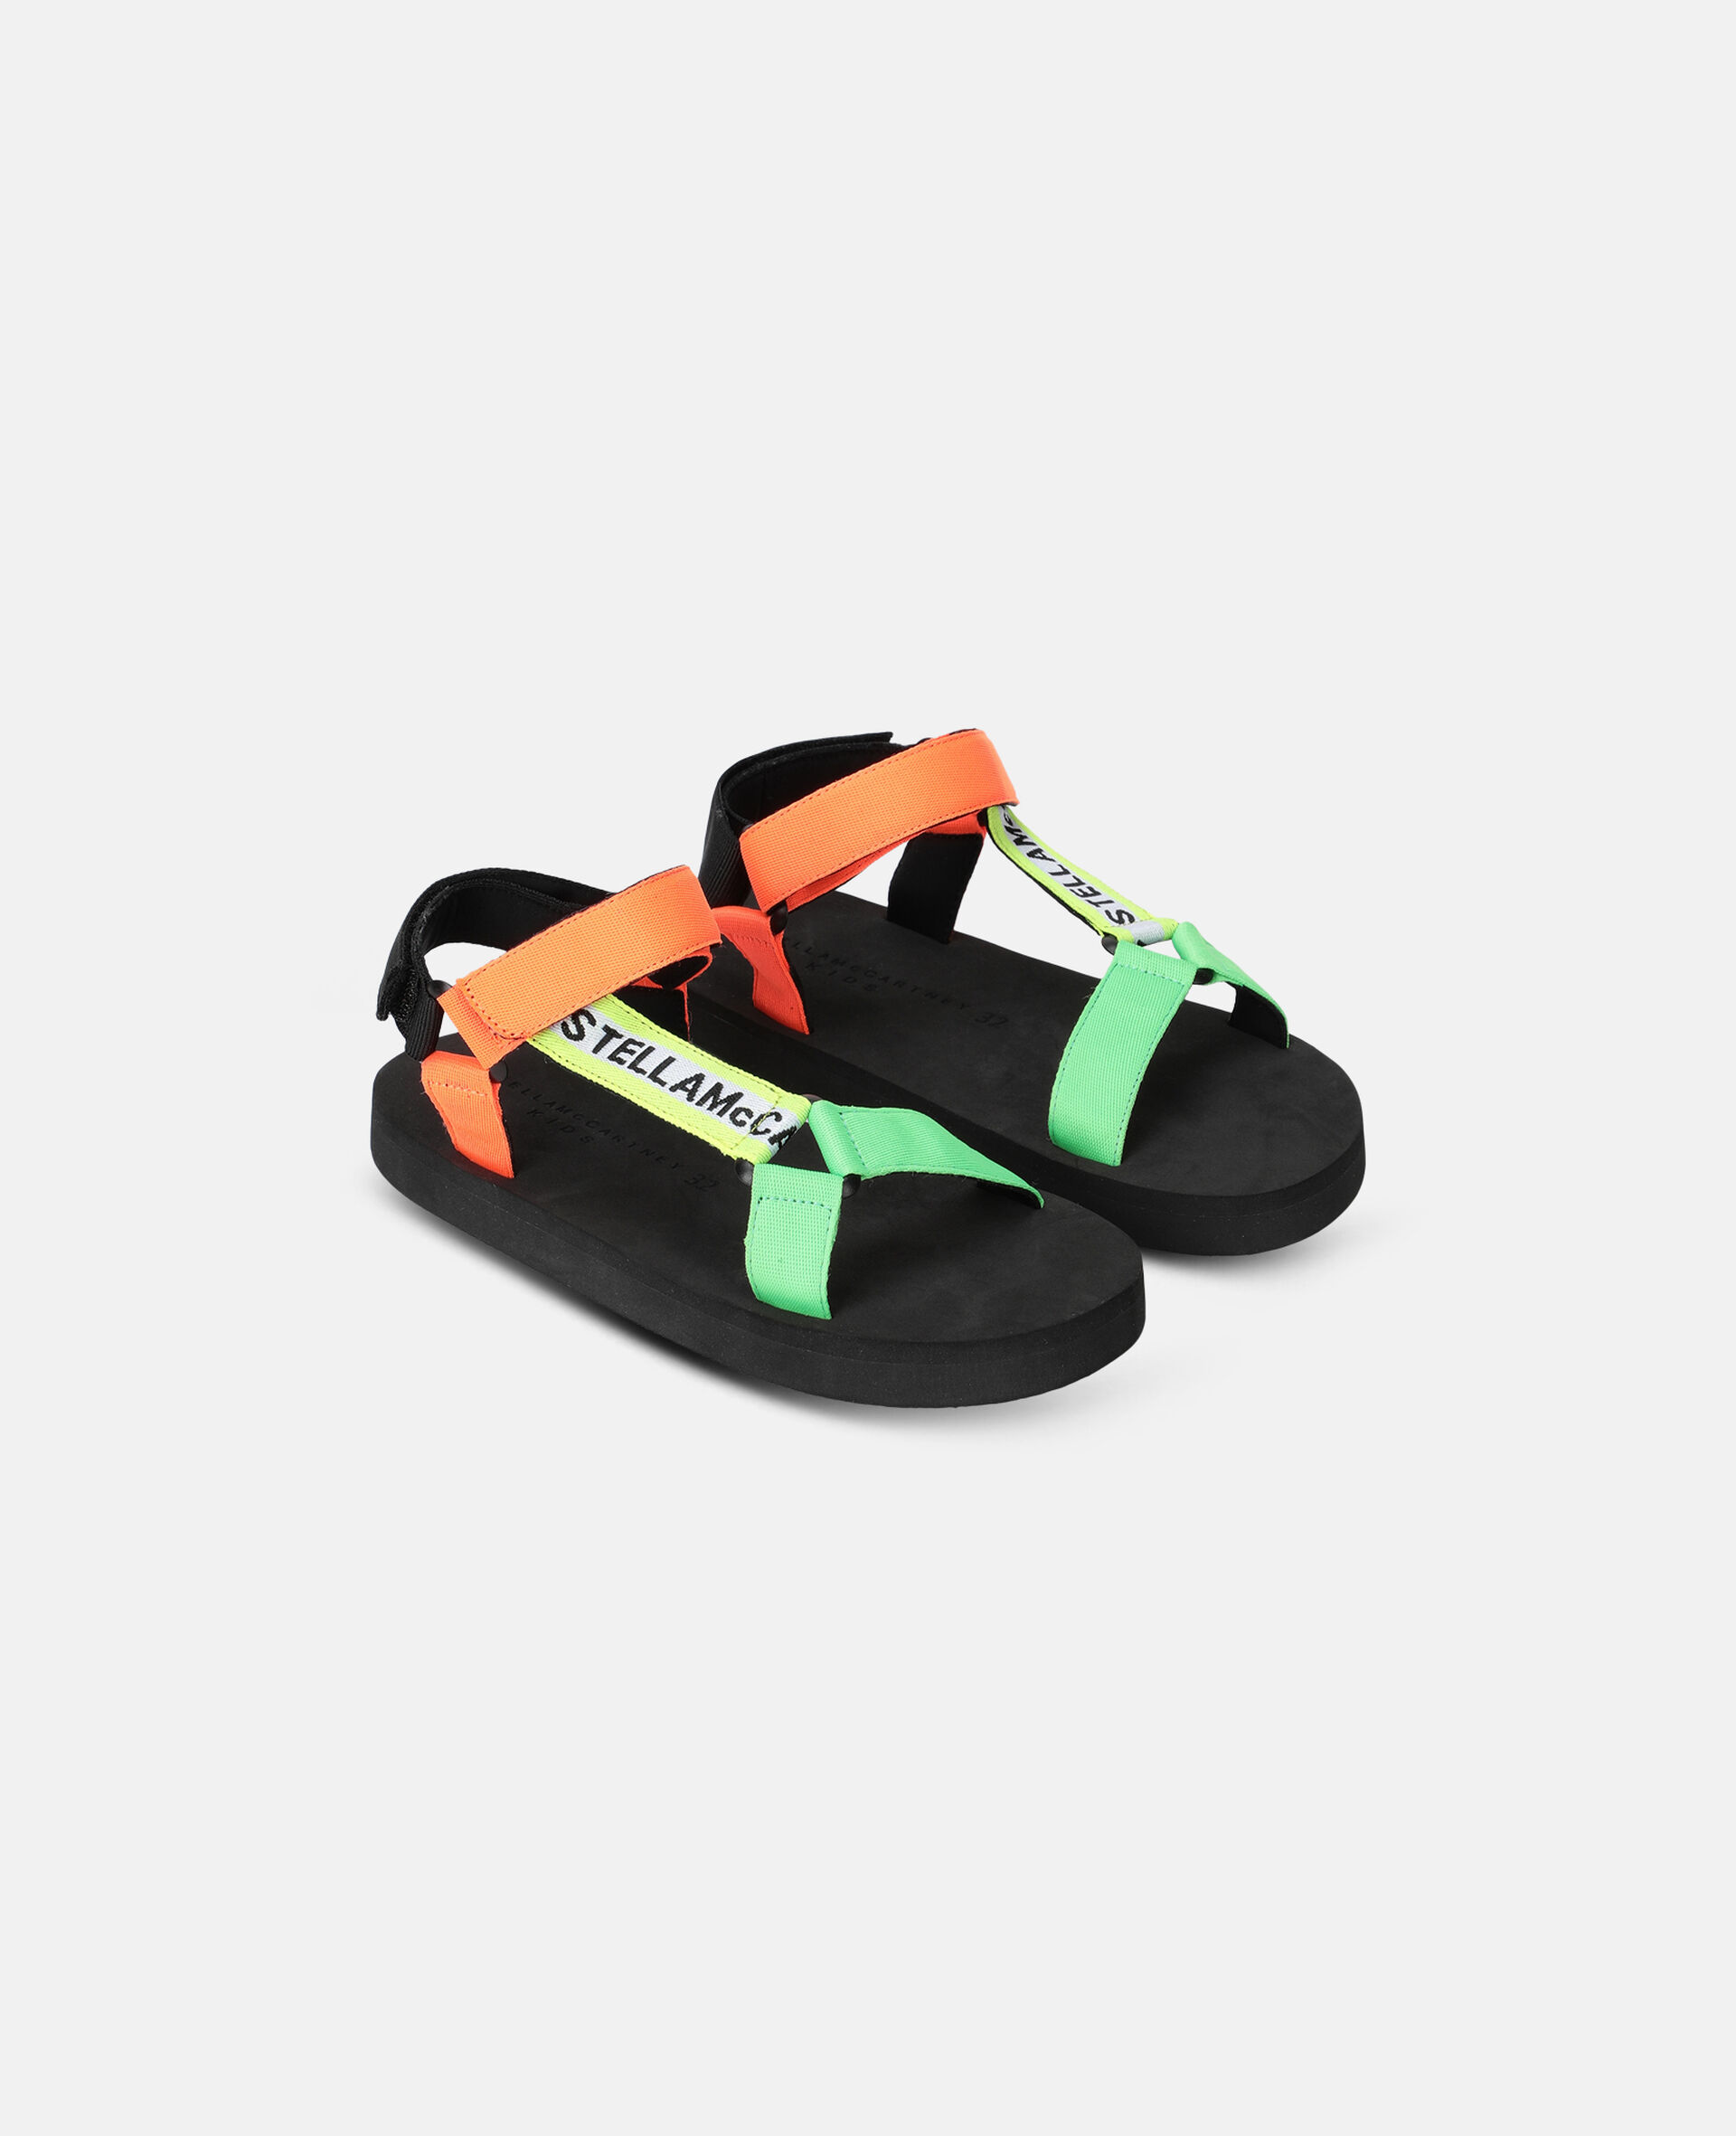 Multicolour Tape Sandals -Multicolour-large image number 3